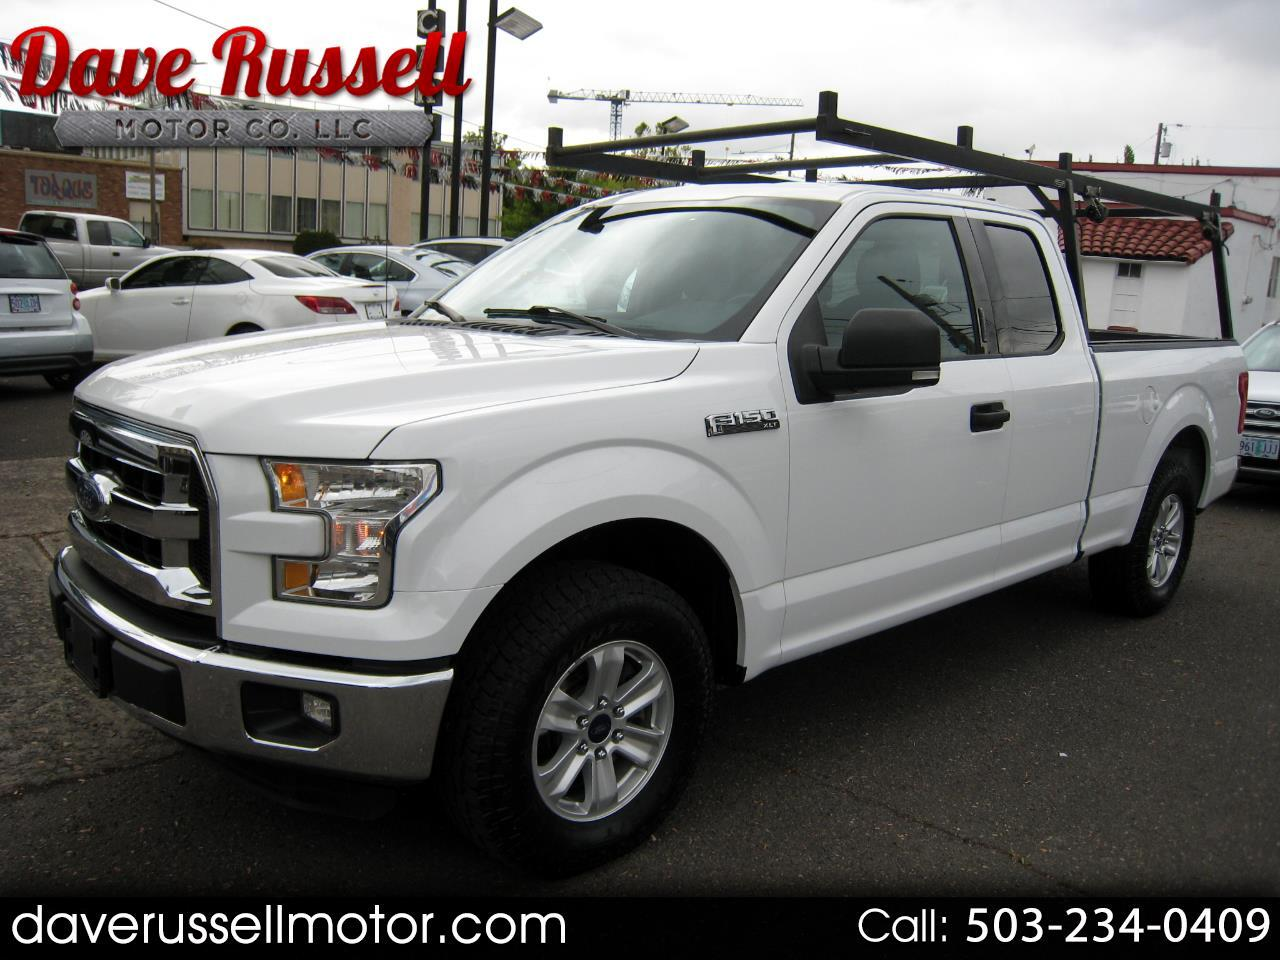 2016 Ford F-150 XLT SuperCab Pickup Truck 6.5-ft. Bed